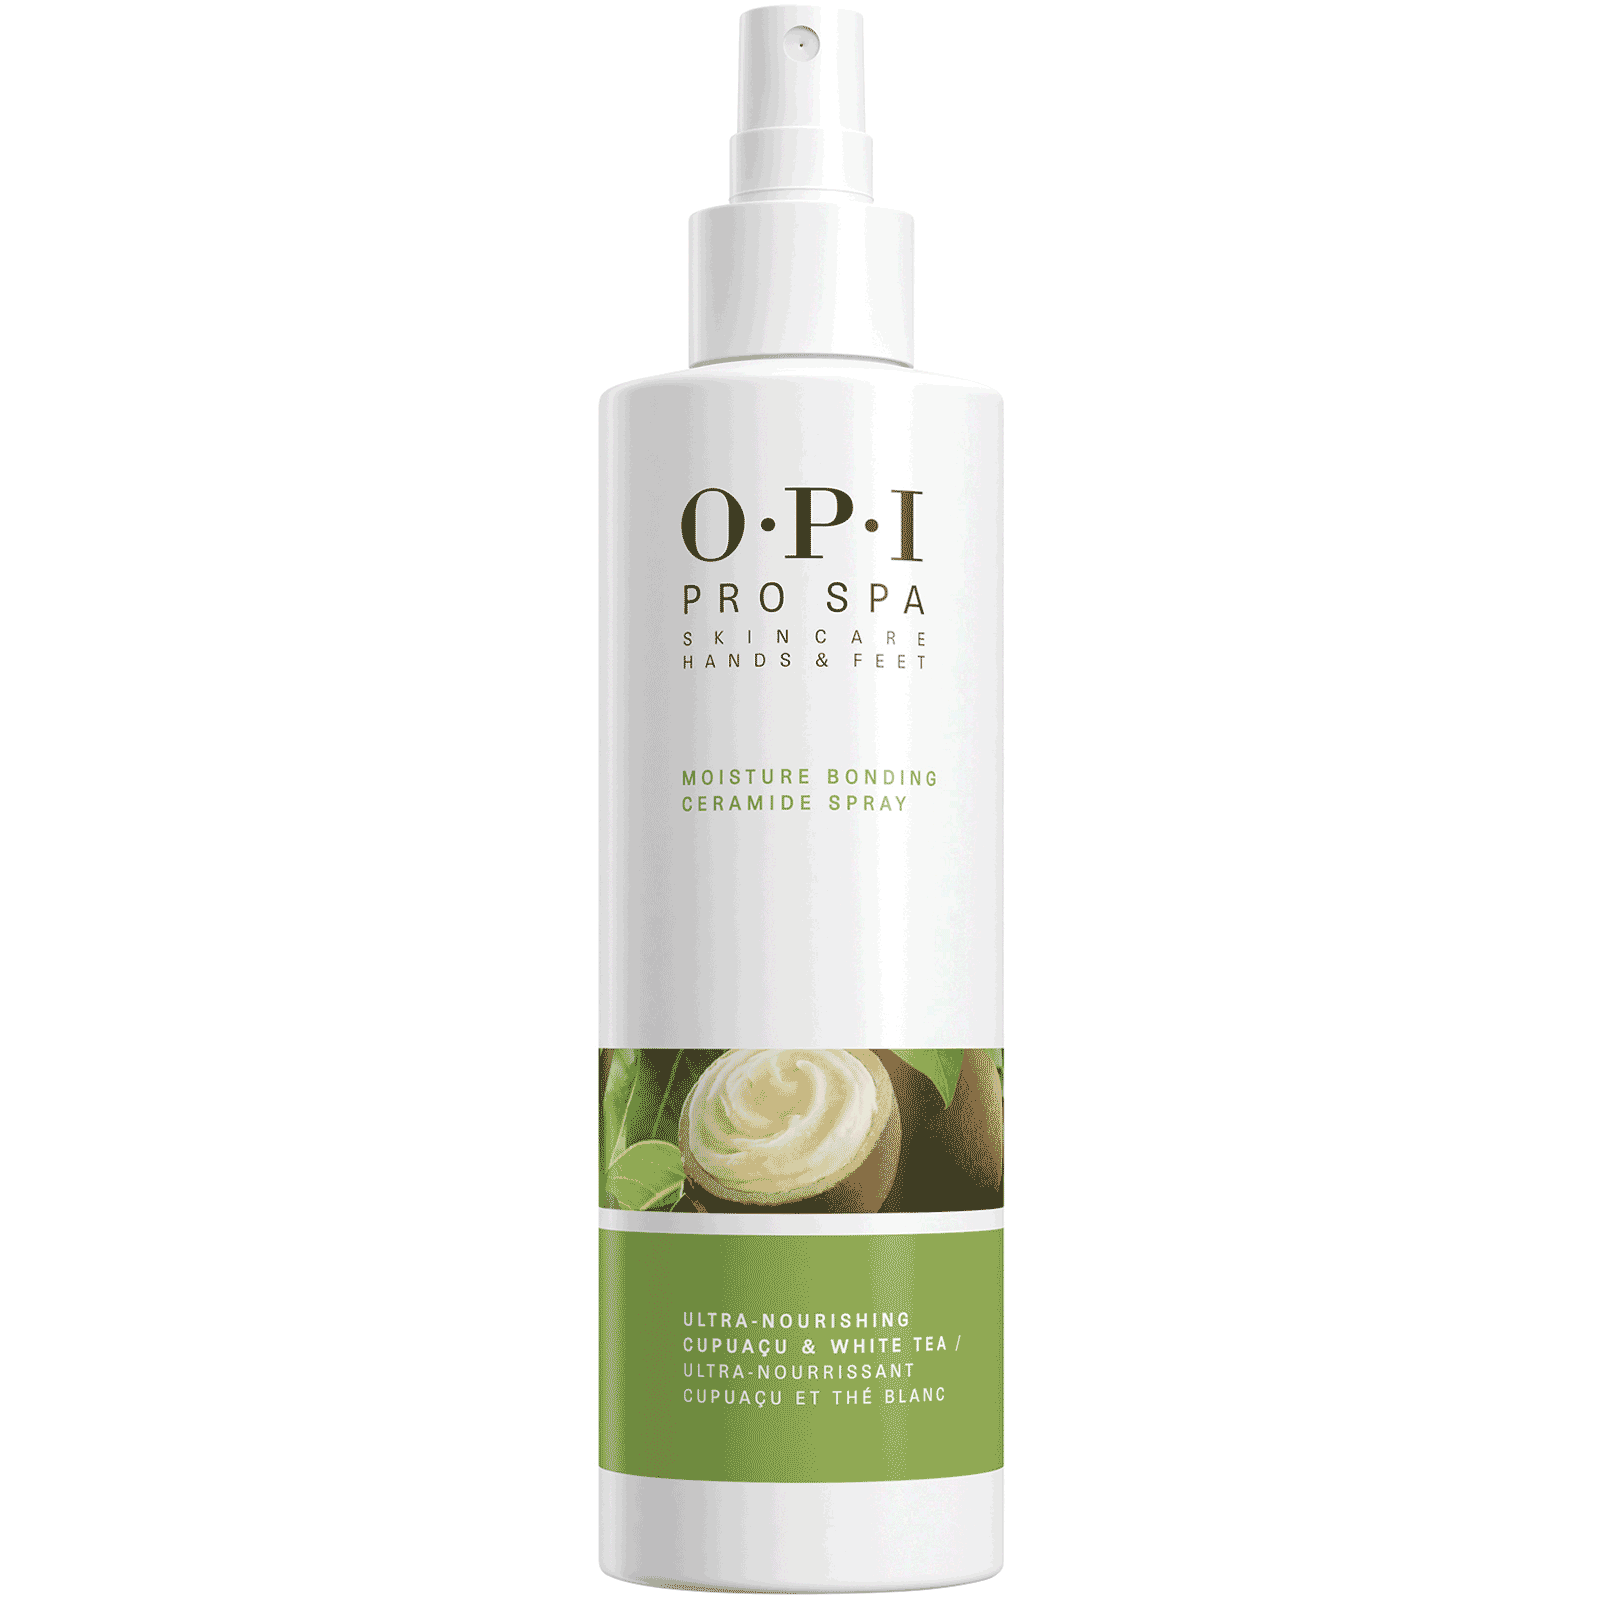 ProSpa Moisture Bonding Ceramide Spray